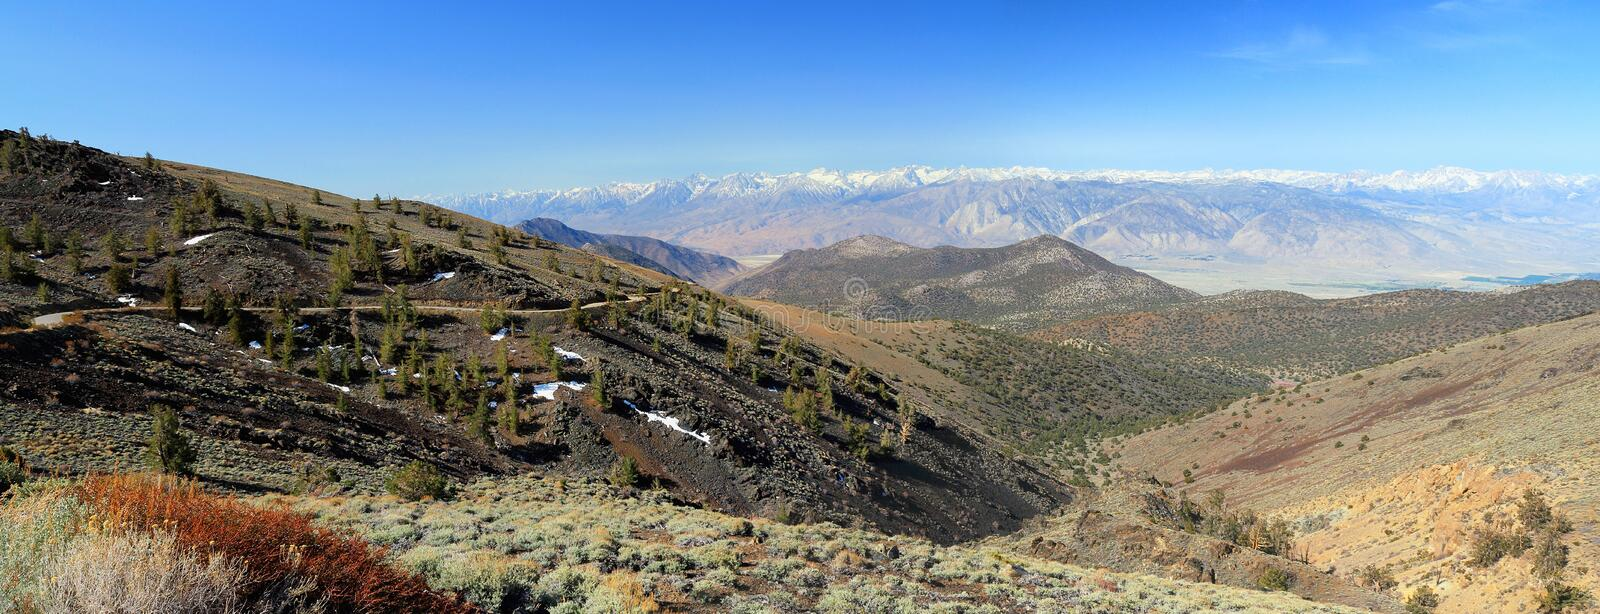 White Mountain Road Overlooking Owens Valley and Sierra Nevada, California, Panorama stock photo